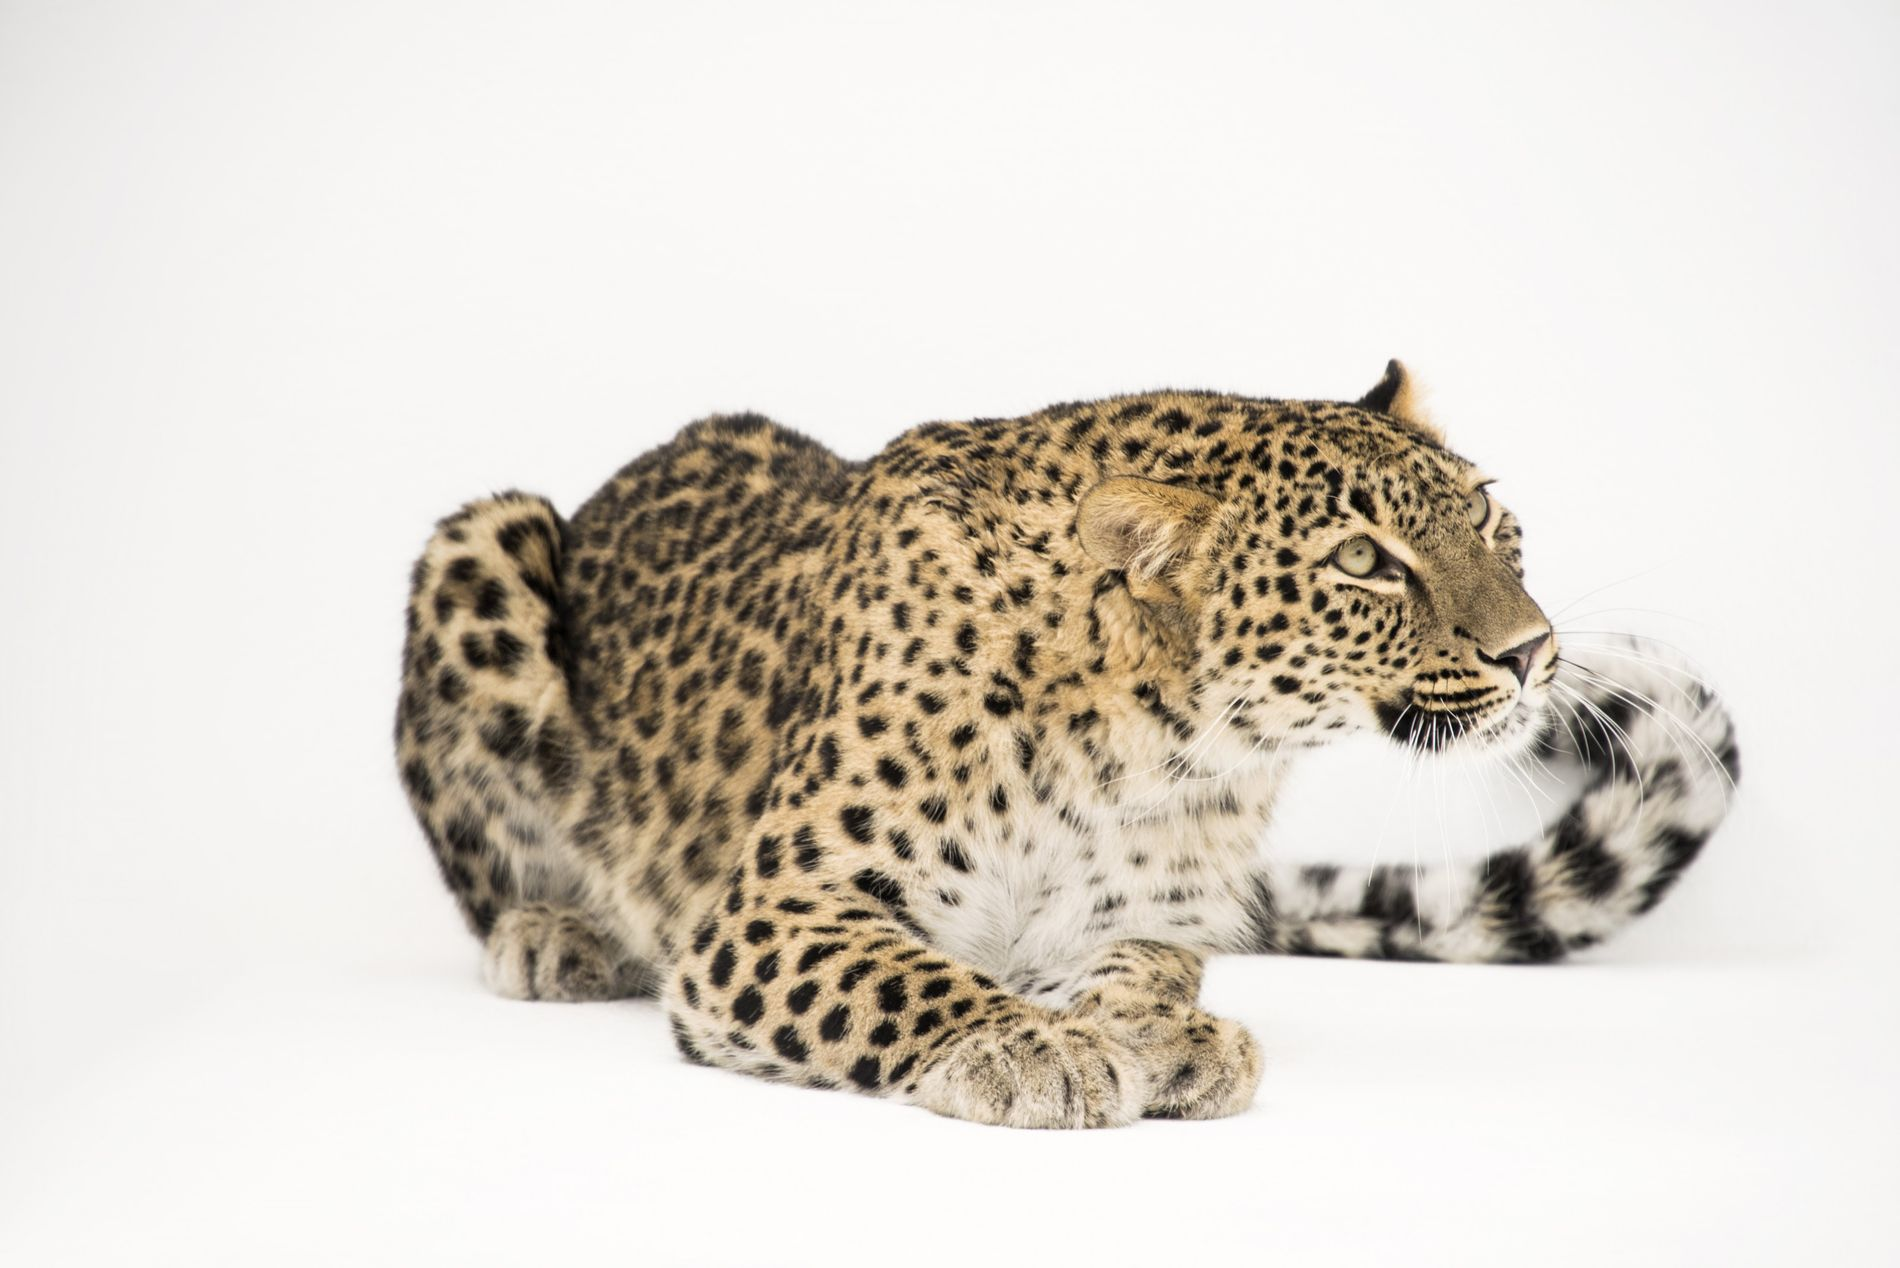 Leopardo-da-pérsia entra para o Photo Ark